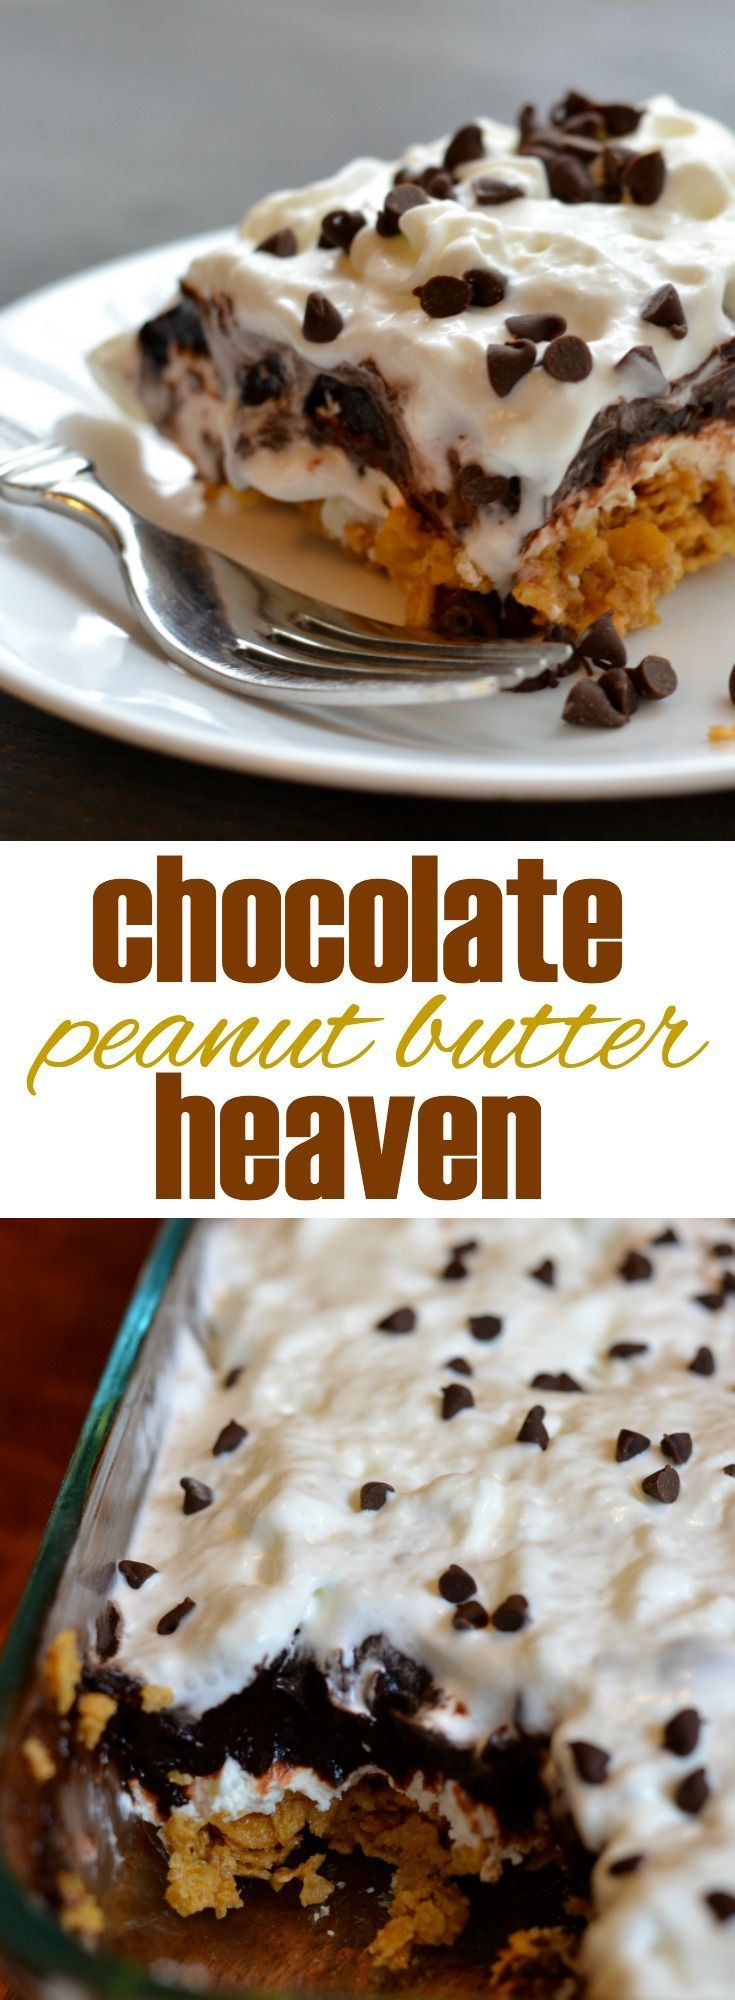 """This easy, no bake dessert truly tastes like heaven. Layers of peanut butter """"crunch,"""" sweetened cream cheese, and dark chocolate"""